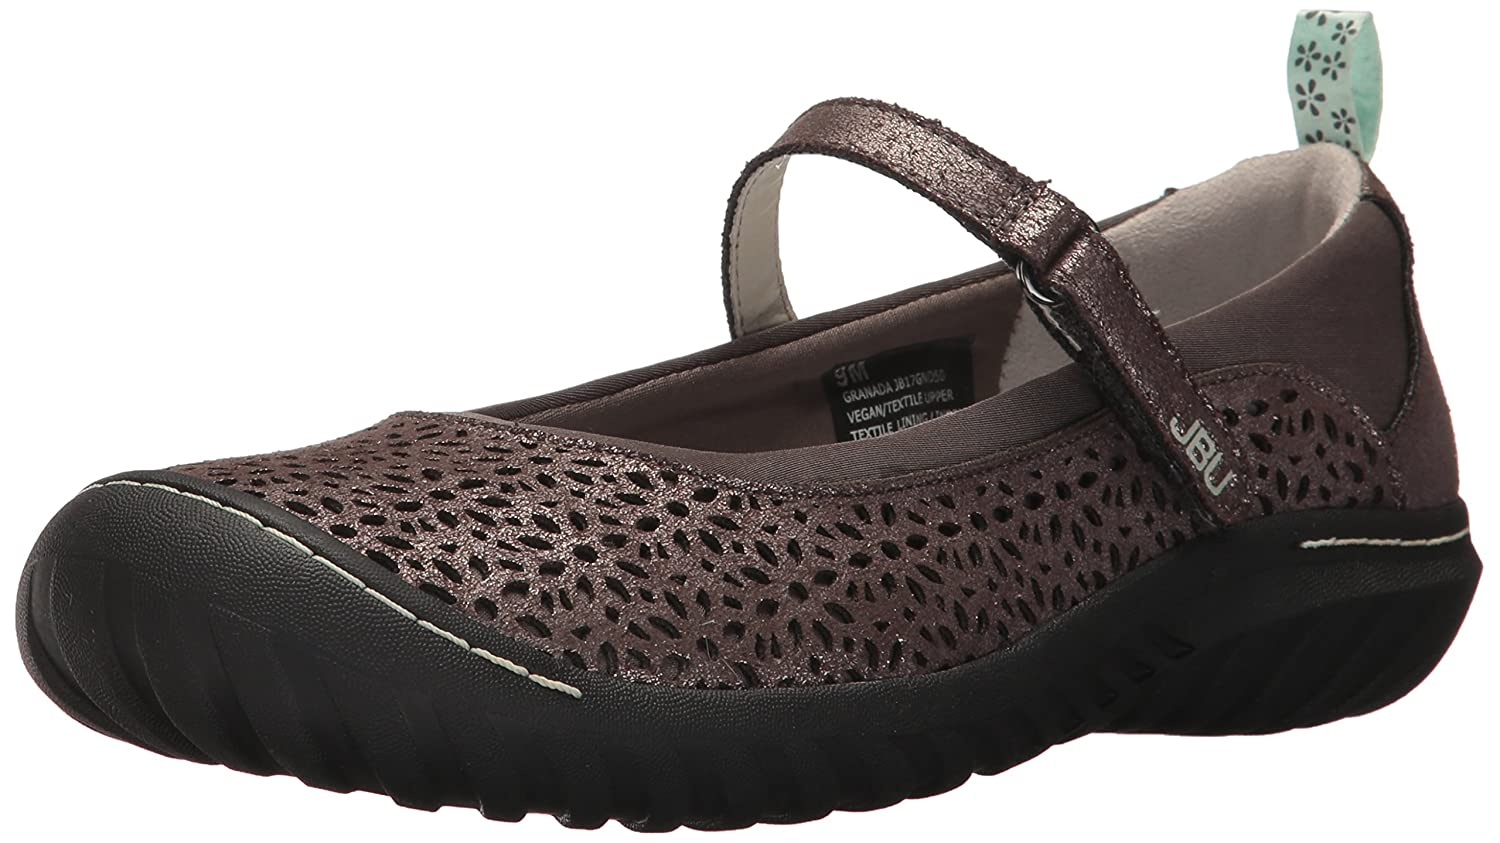 JBU by Jambu Women's Granada Mary Jane Flat